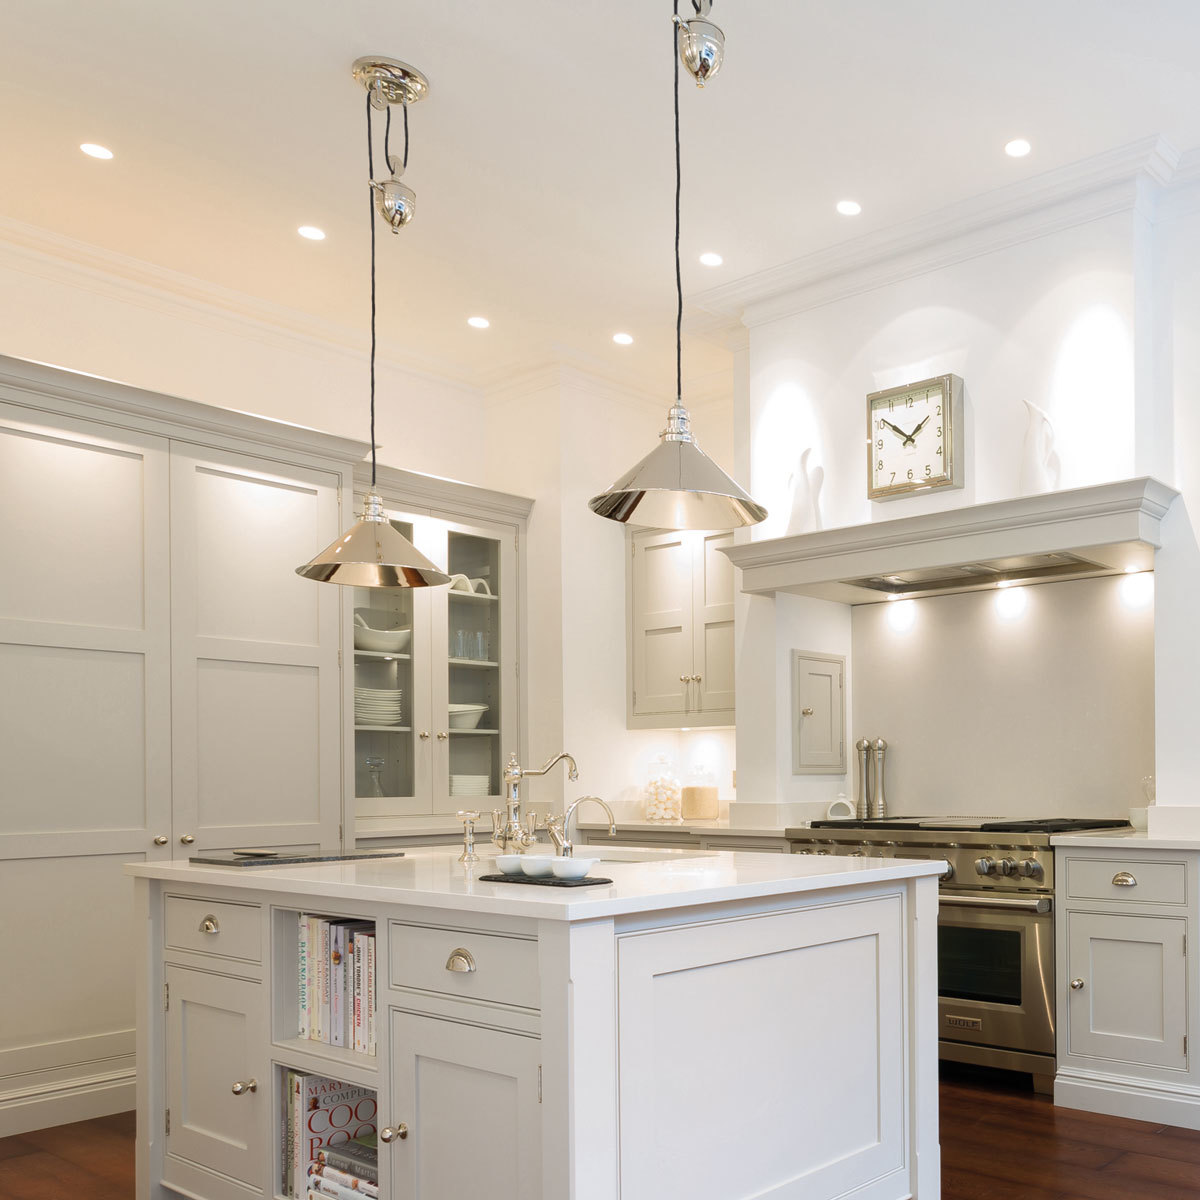 elstead provence one light rise and fall pendent ceiling light in polished nickel costco uk